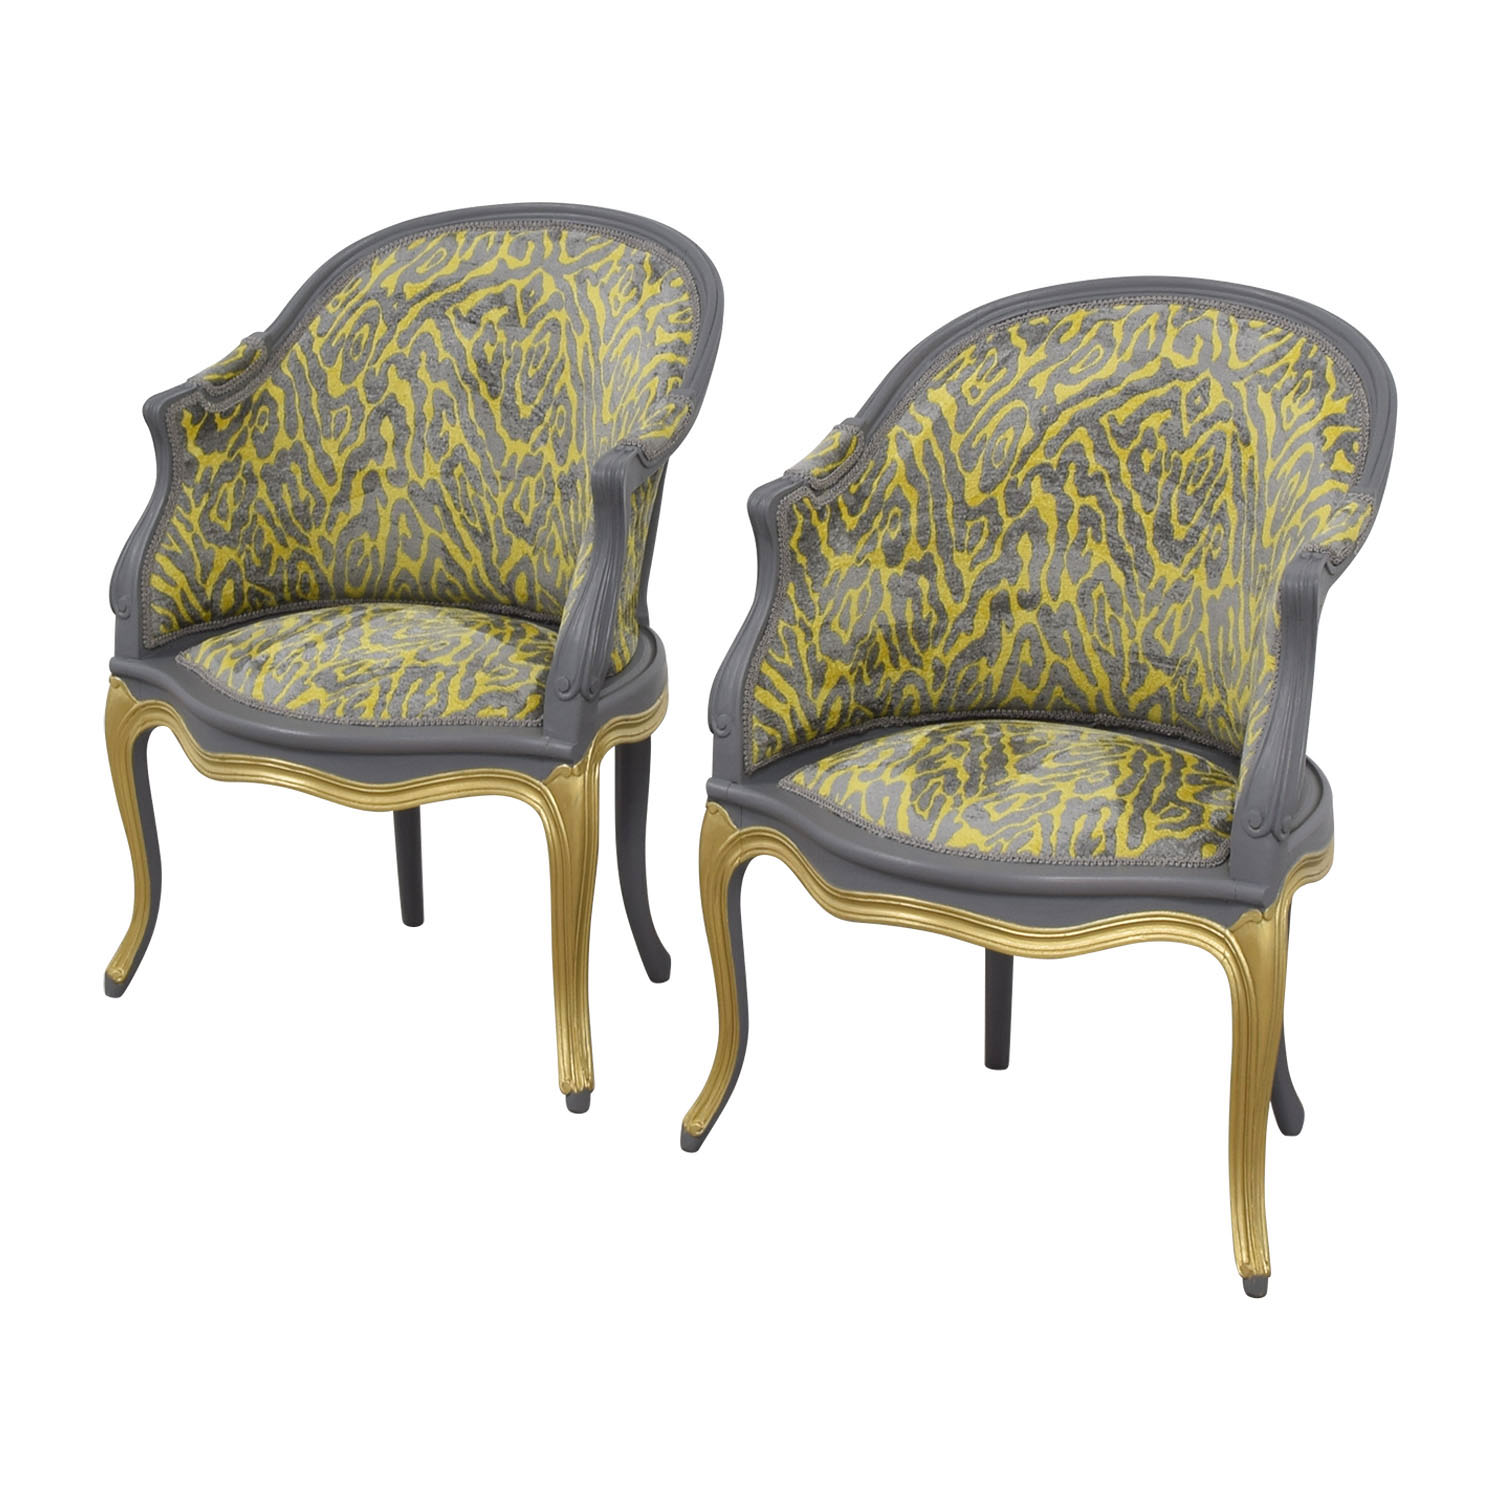 Country French Grey and Yellow Accent Chairs on sale